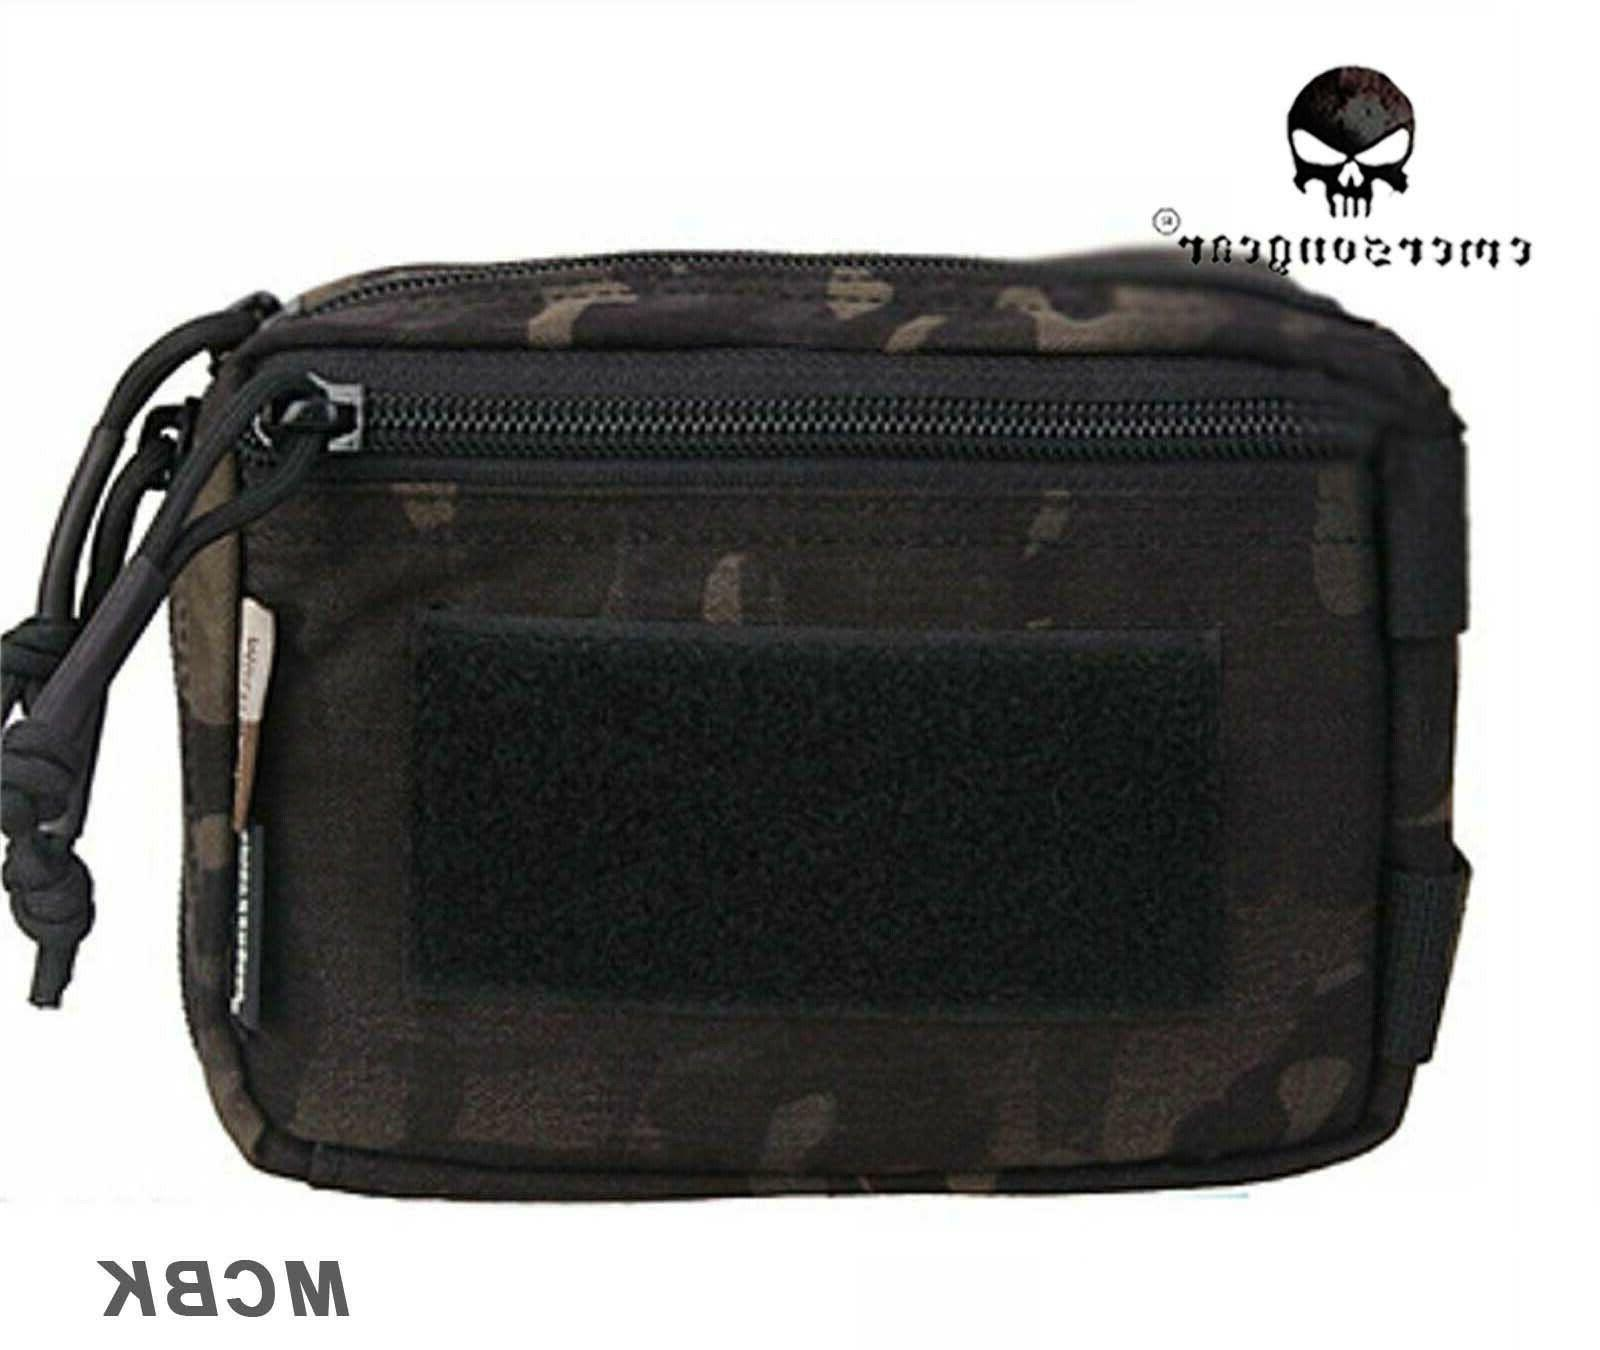 Emerson Tool Molle Bag